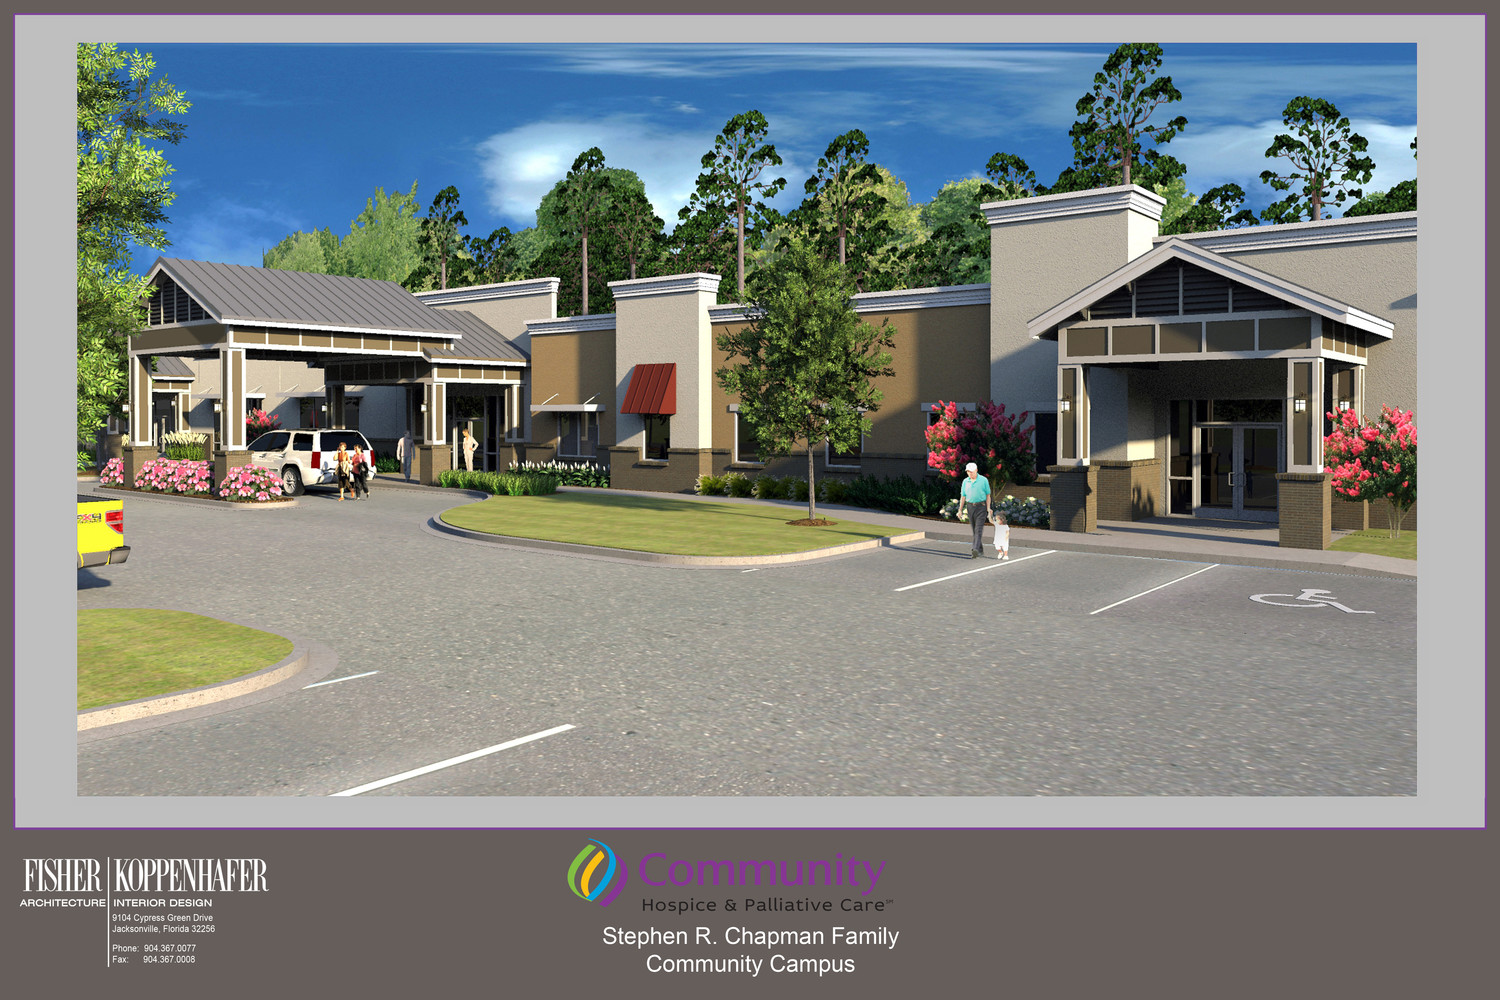 A rendering displays the vision of the Stephen R. Chapman Family Community Campus.